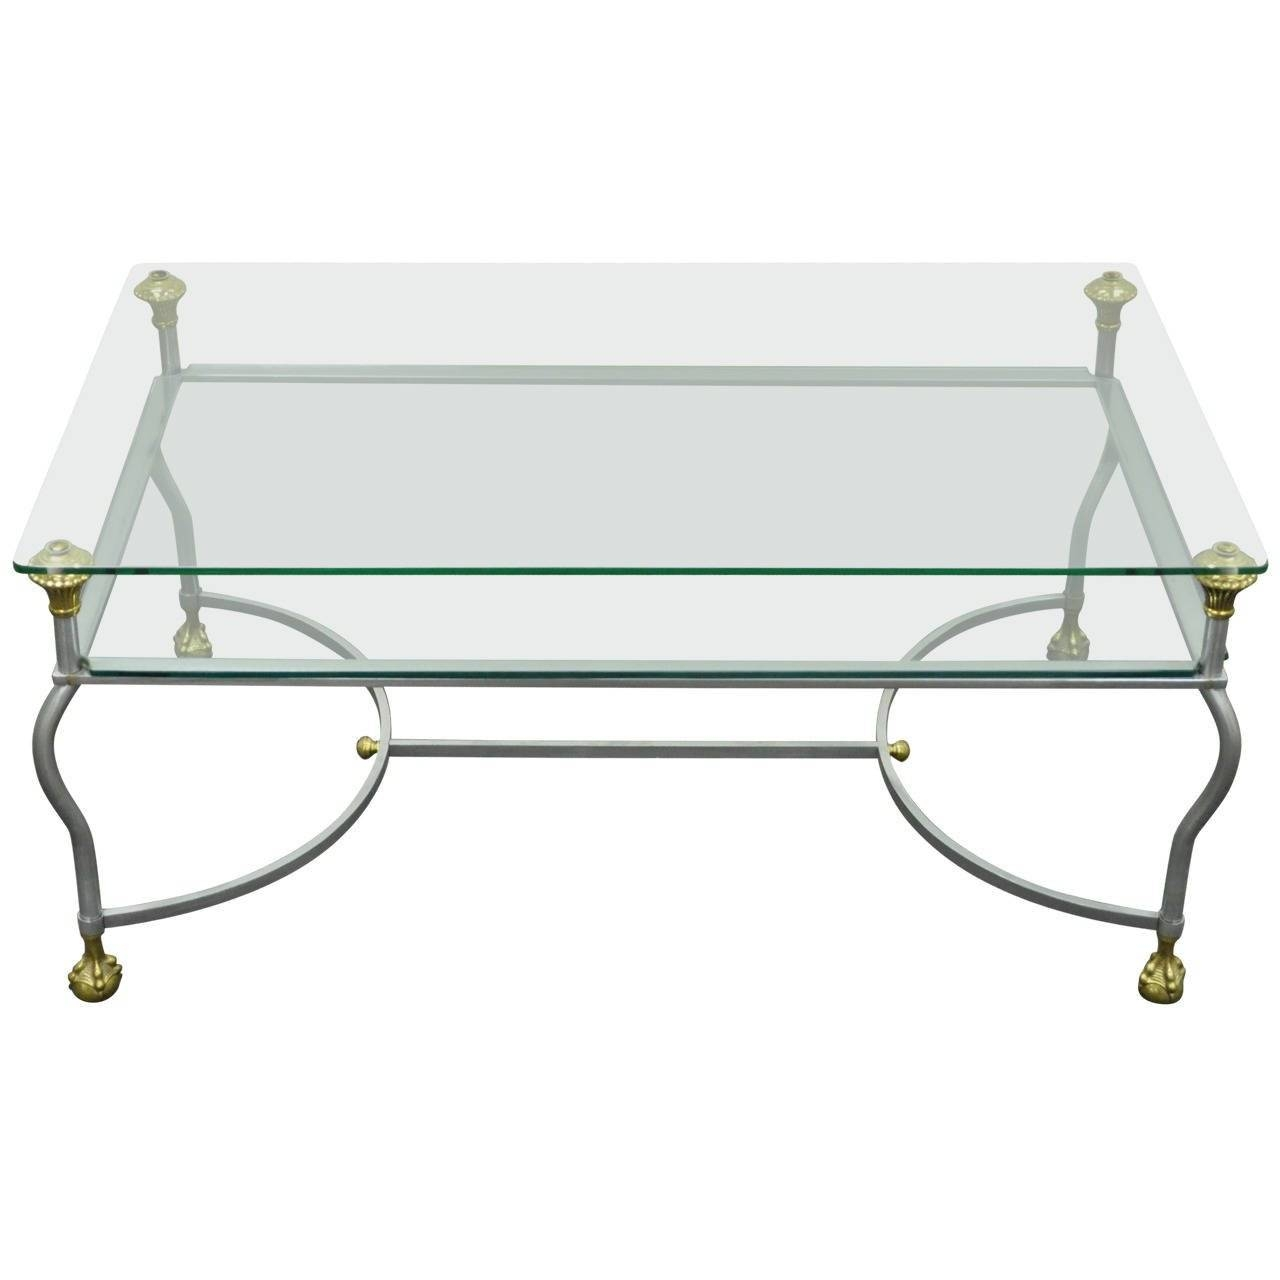 Rare Brass, Brushed Steel, And Glass Claw Foot Coffee Table After Intended For Steel And Glass Coffee Tables (View 23 of 30)